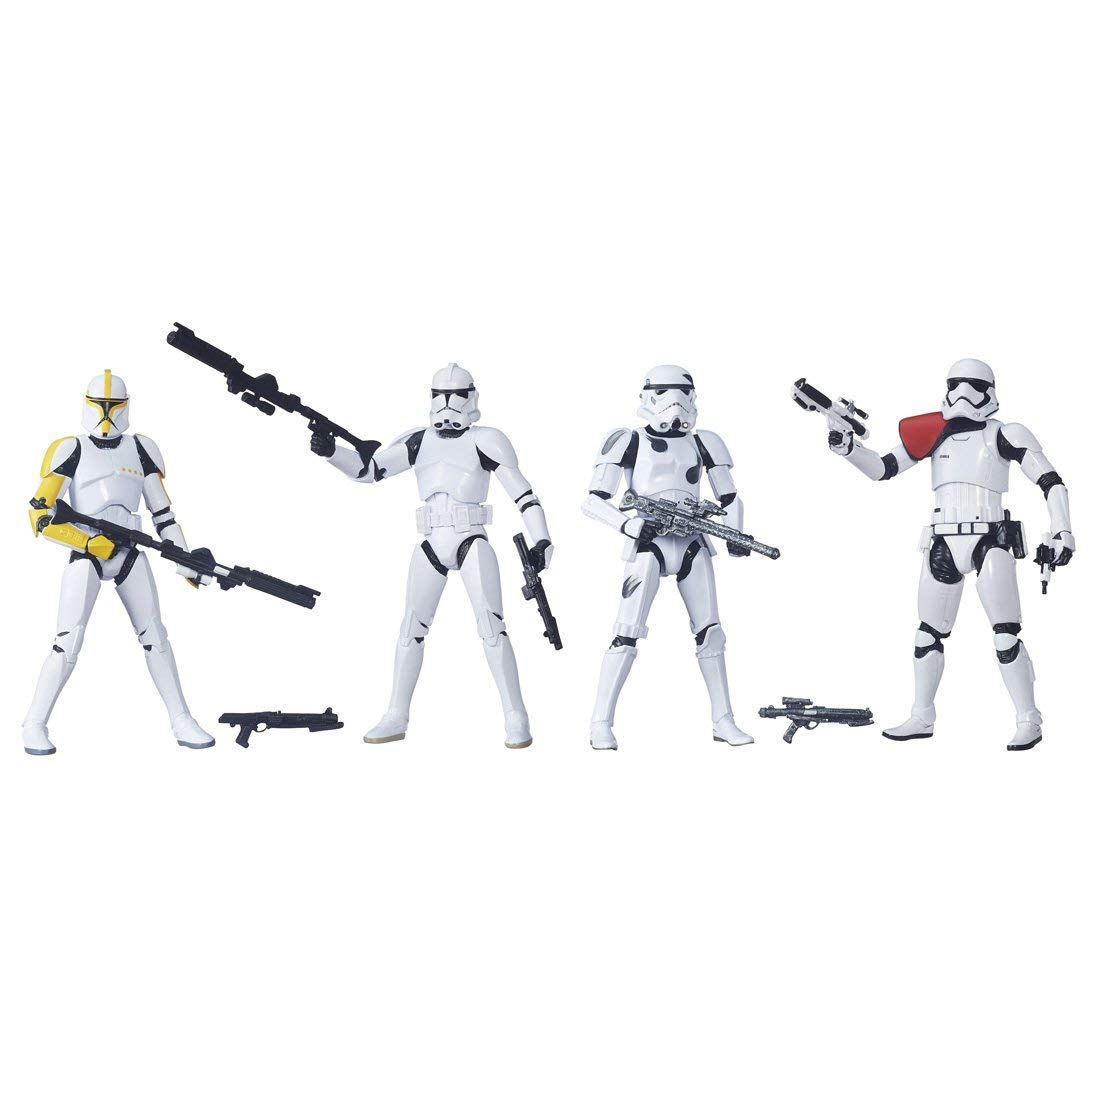 Star Wars Black Series 6 Zoll Figuren Trooper Builder 4 Pack (vorlaufig) gemalt Actionfigur